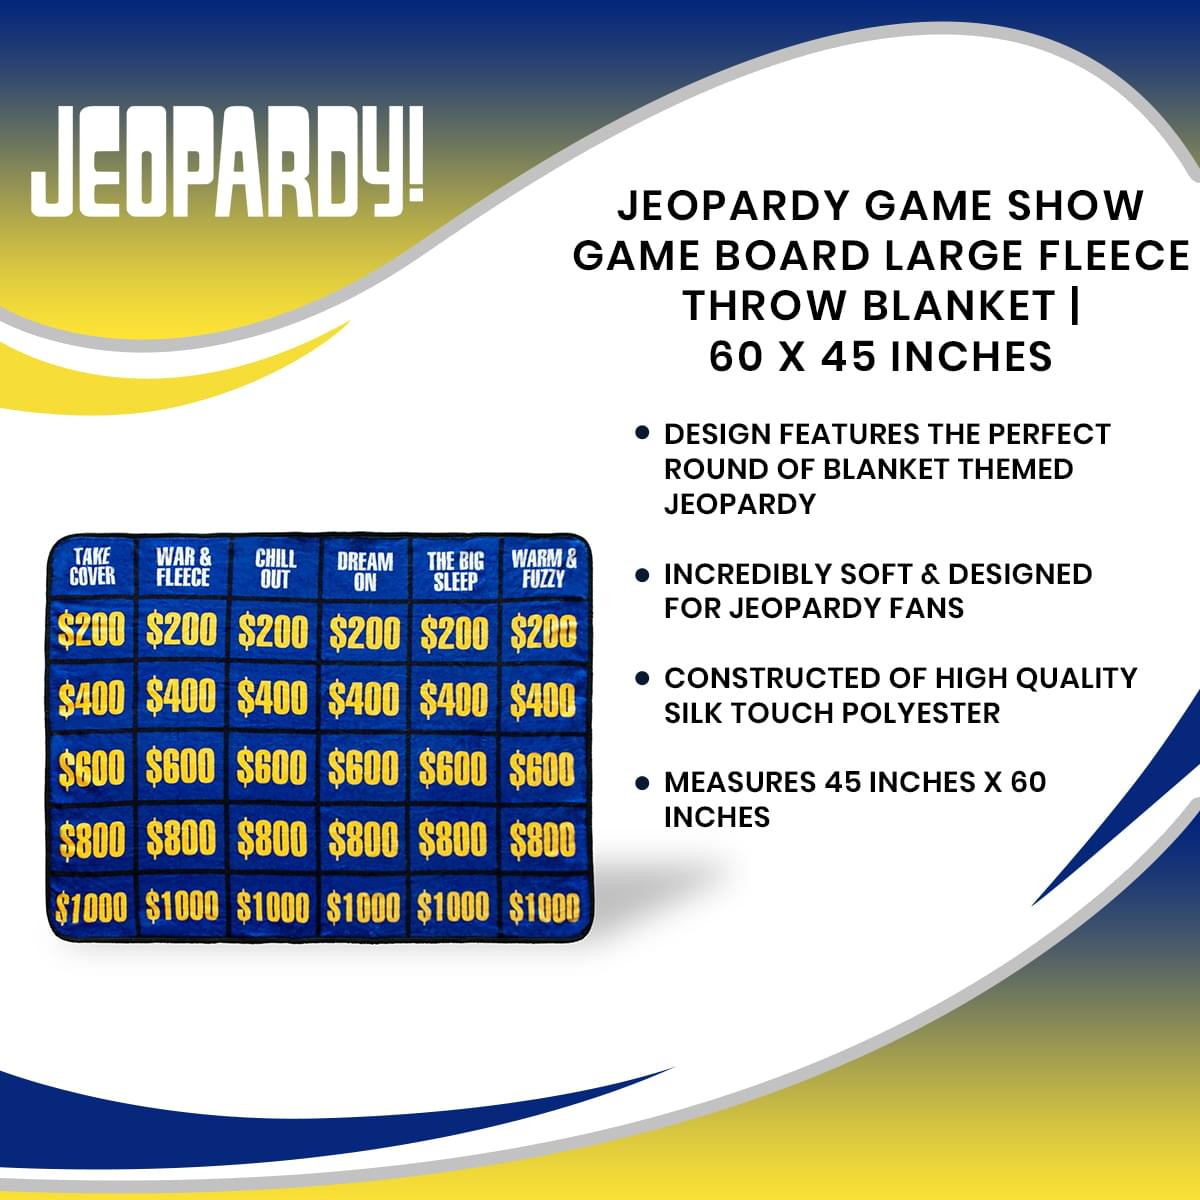 Jeopardy Game Show Game Board Large Fleece Throw Blanket | 60 x 45 Inches